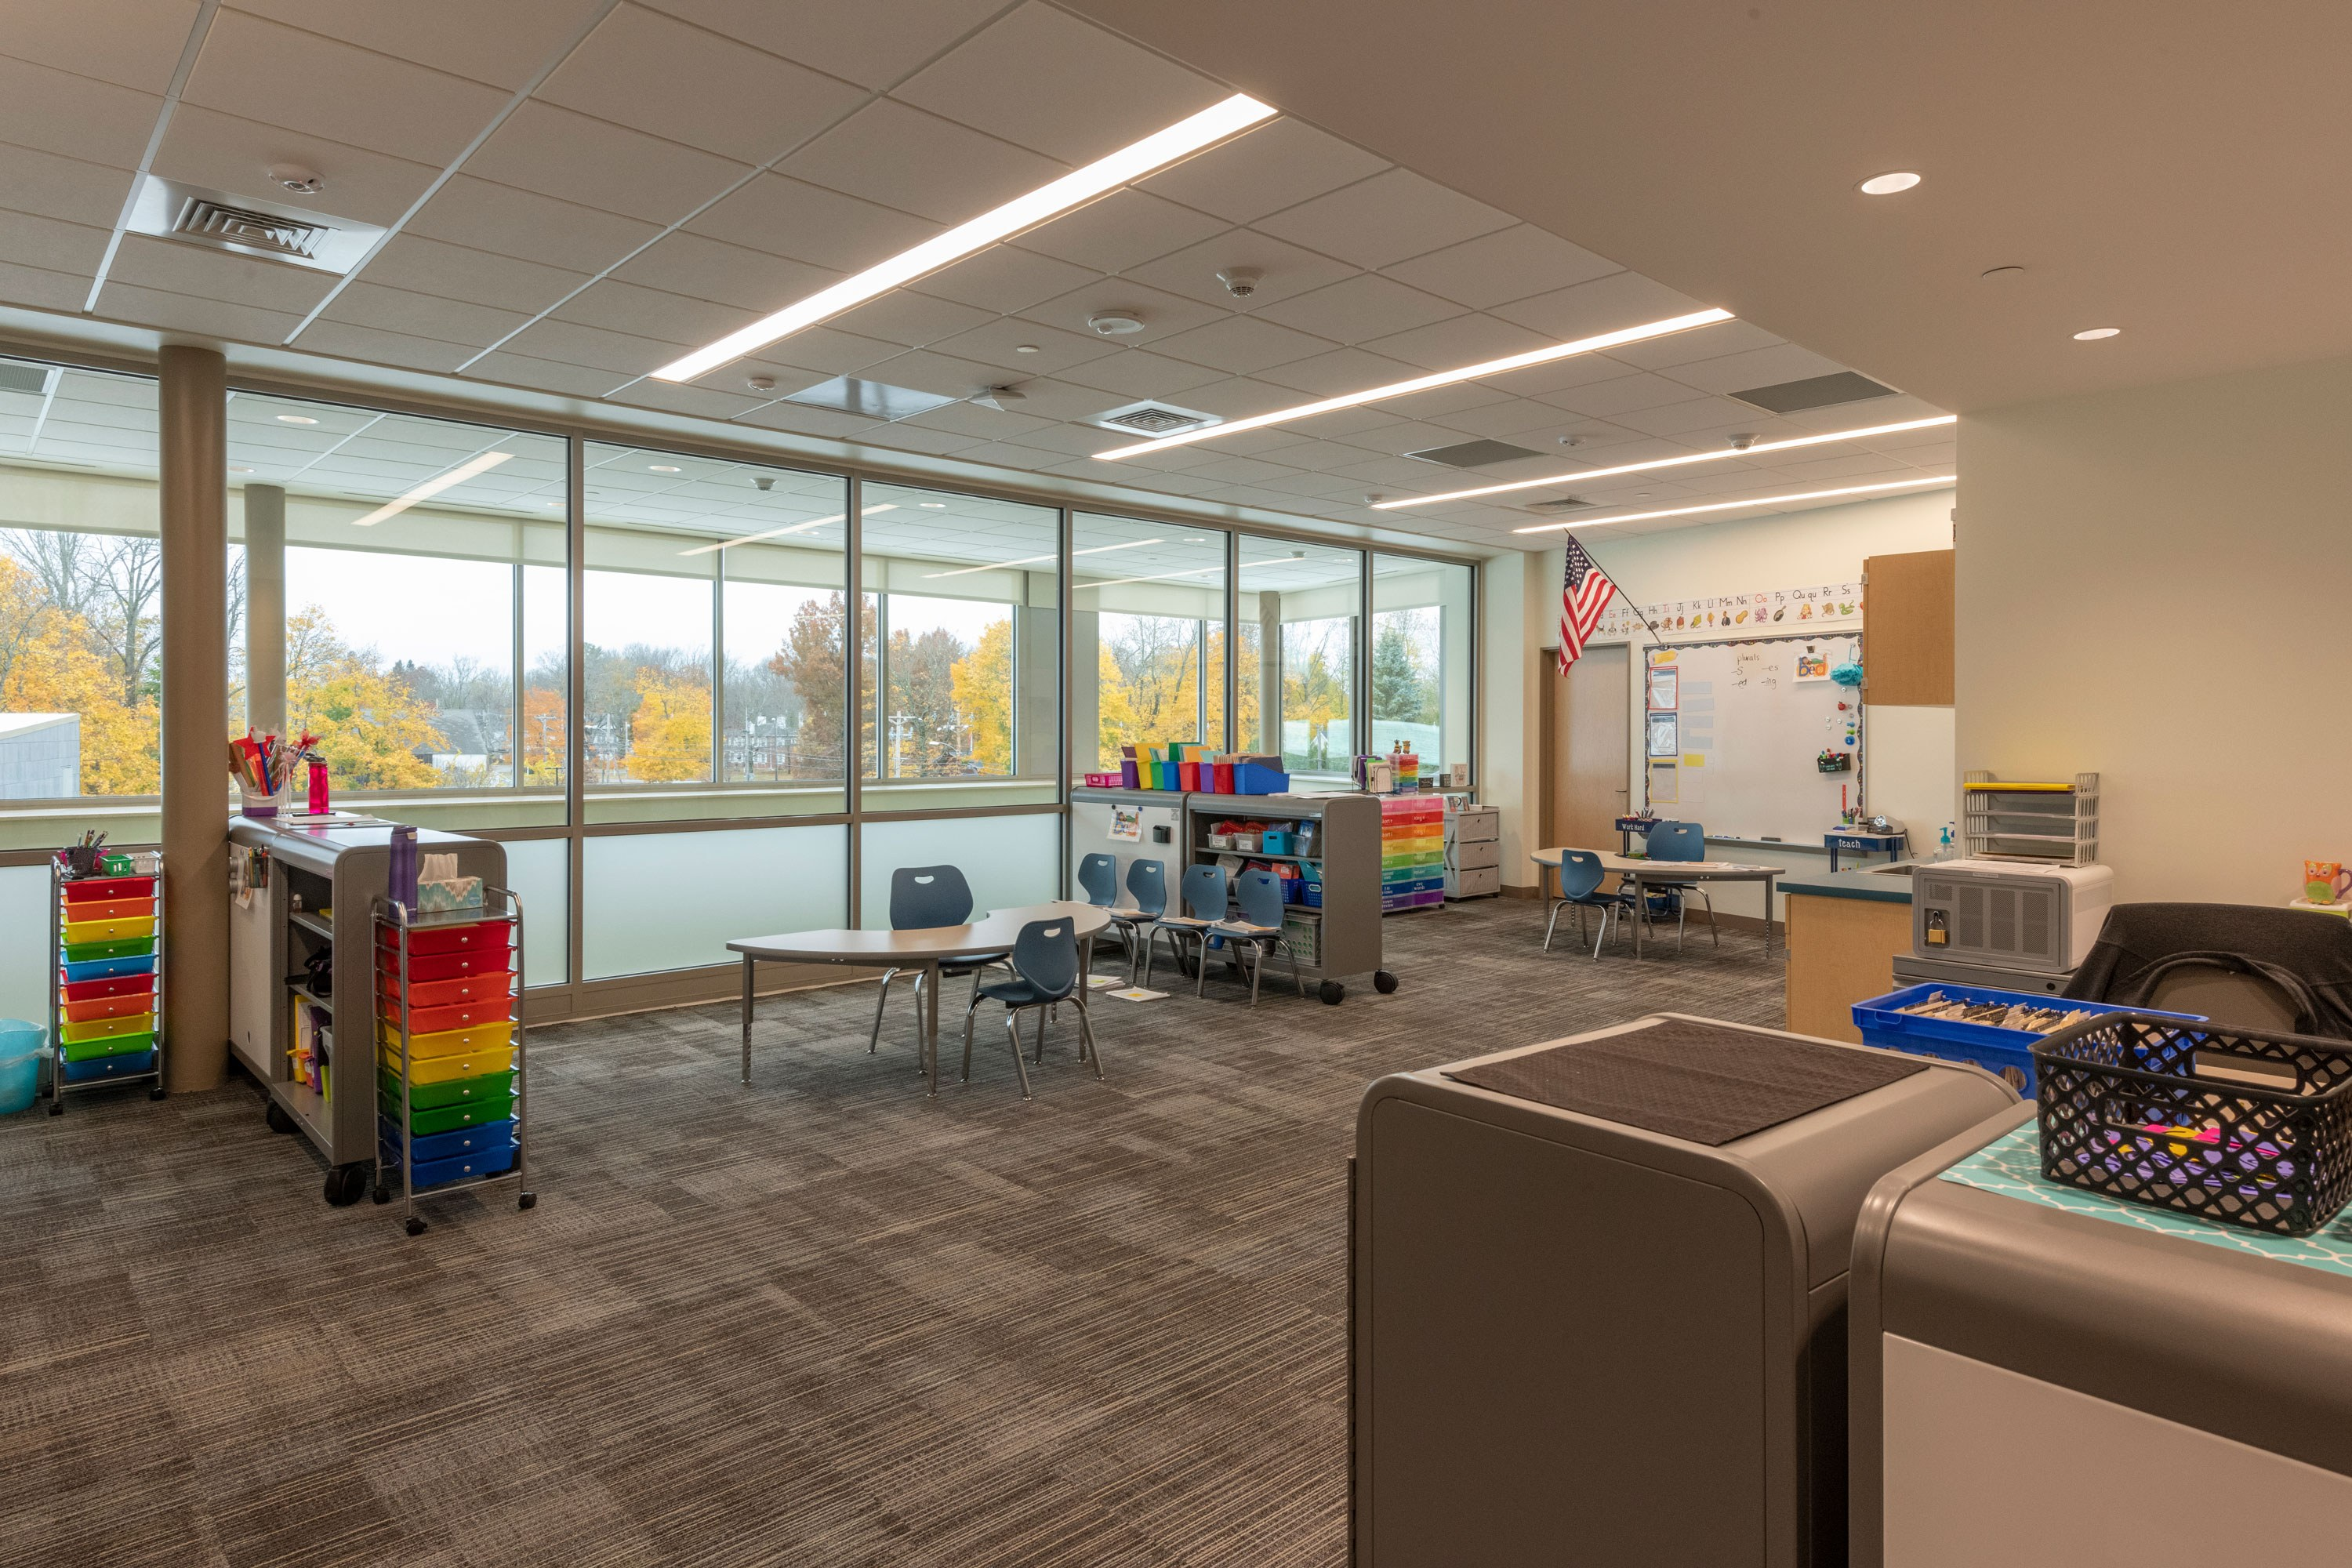 Narragansett RSD Templeton Center School Interior Image 6 small group